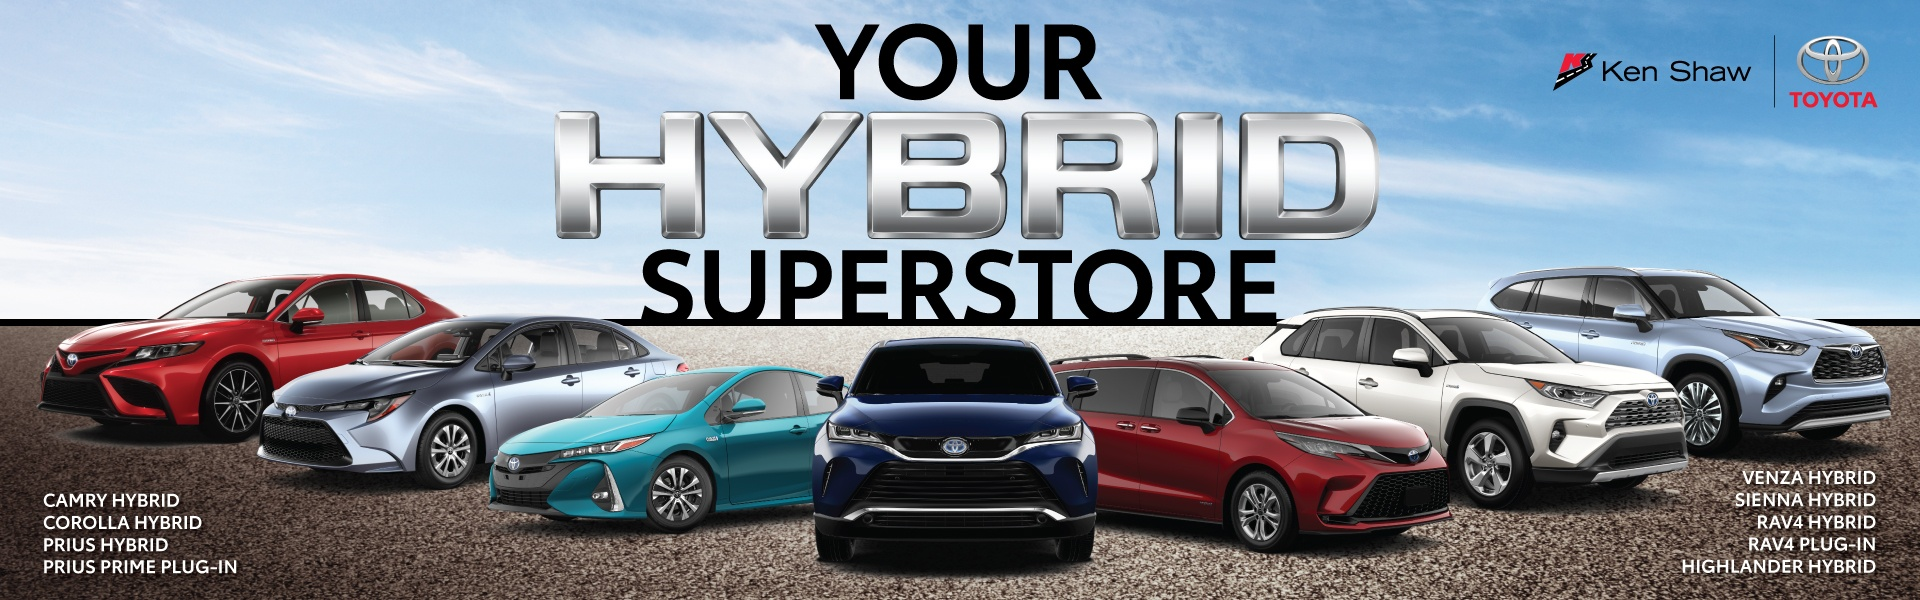 Toyota Hybrid Electric Vehicles, cars, sedans, SUV and Minivan